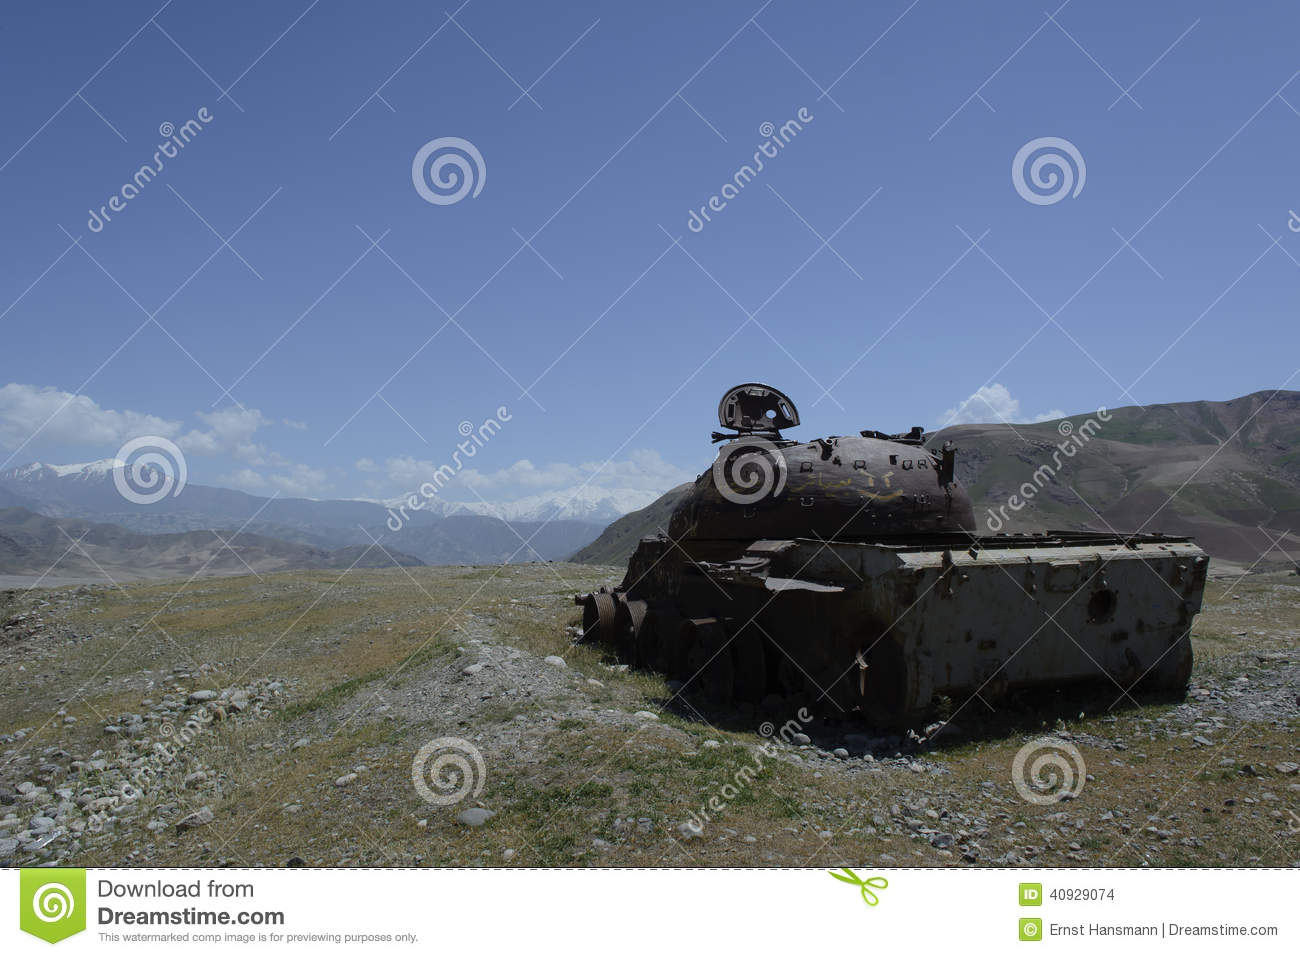 Destroyed soviet tank in Afghanistan